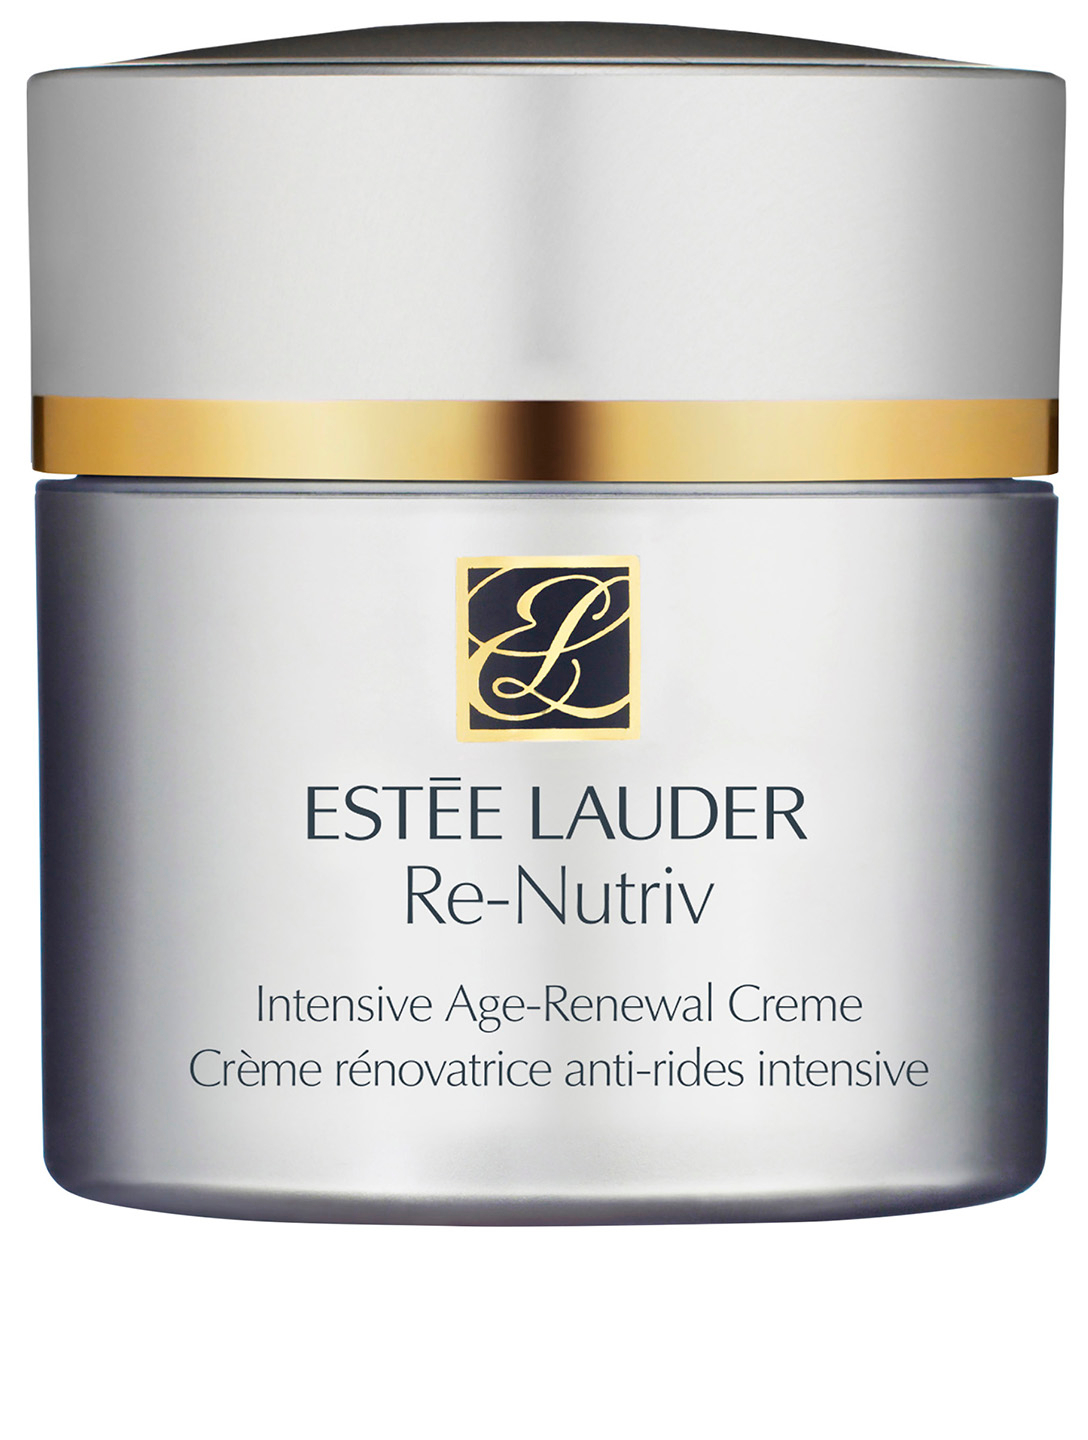 ESTÉE LAUDER Re-Nutriv Intensive Age-Renewal Creme Beauty